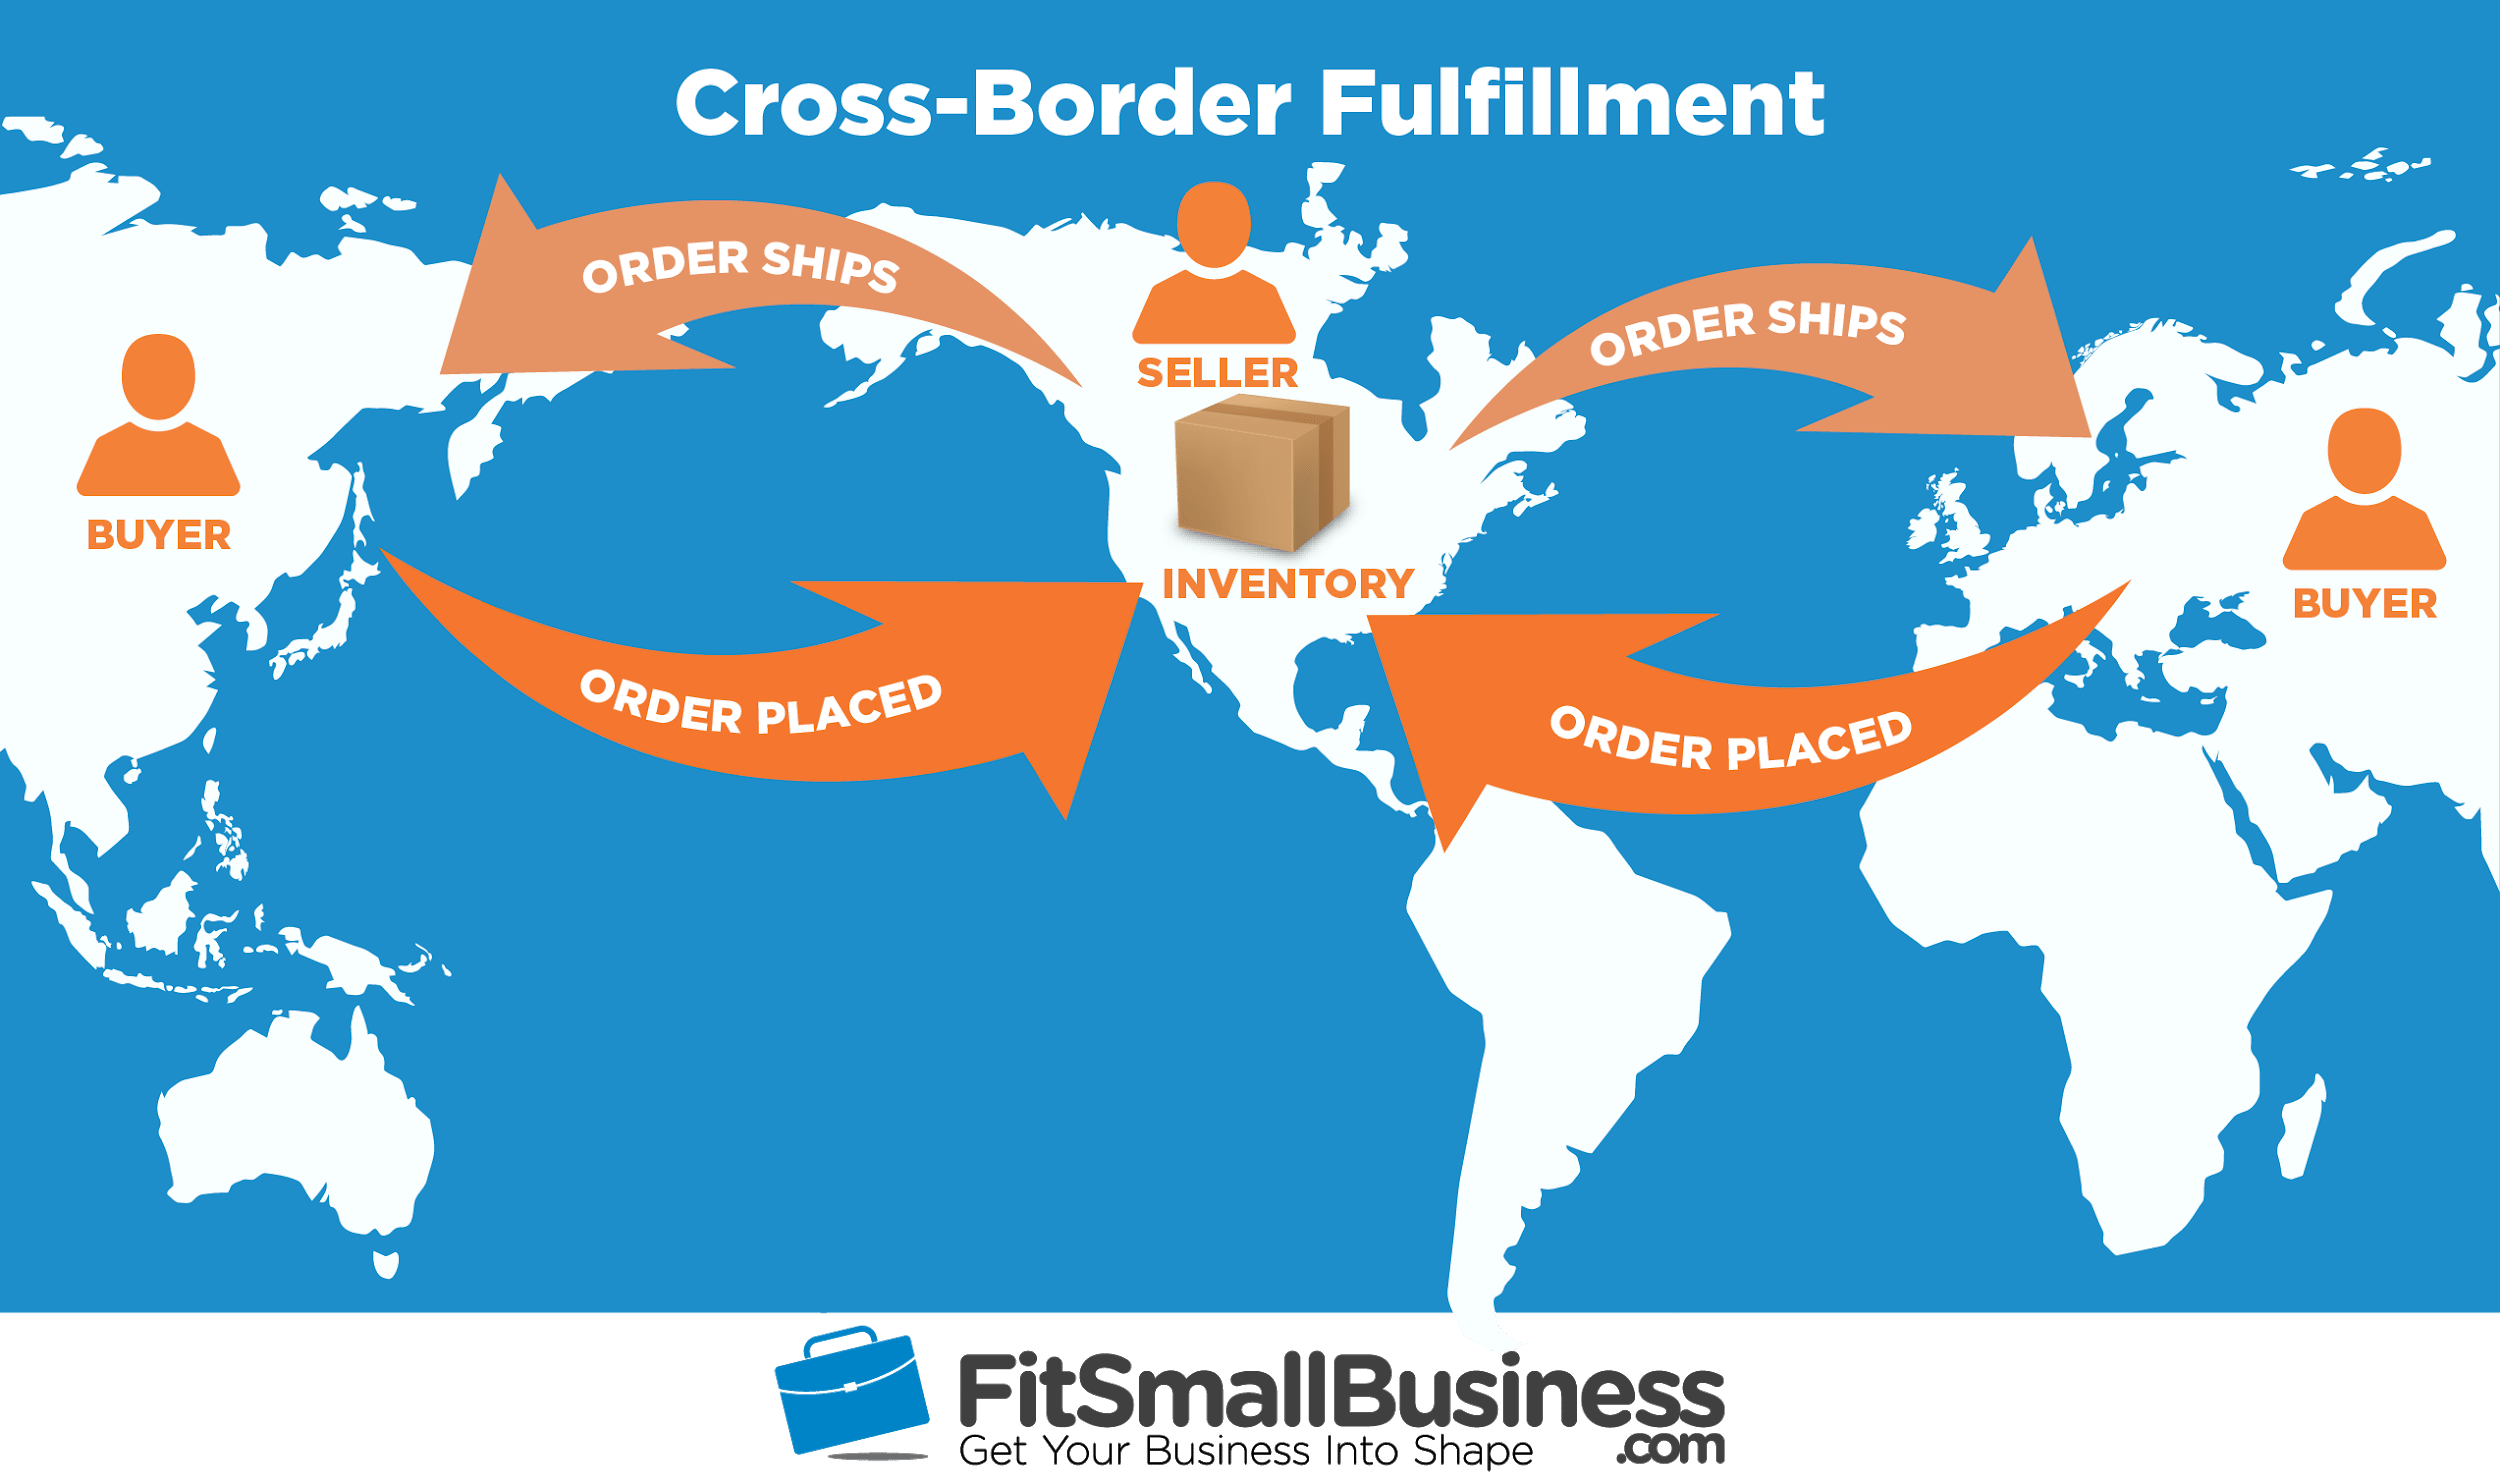 International Fulfillment -- cross-border shipping and fulfillment